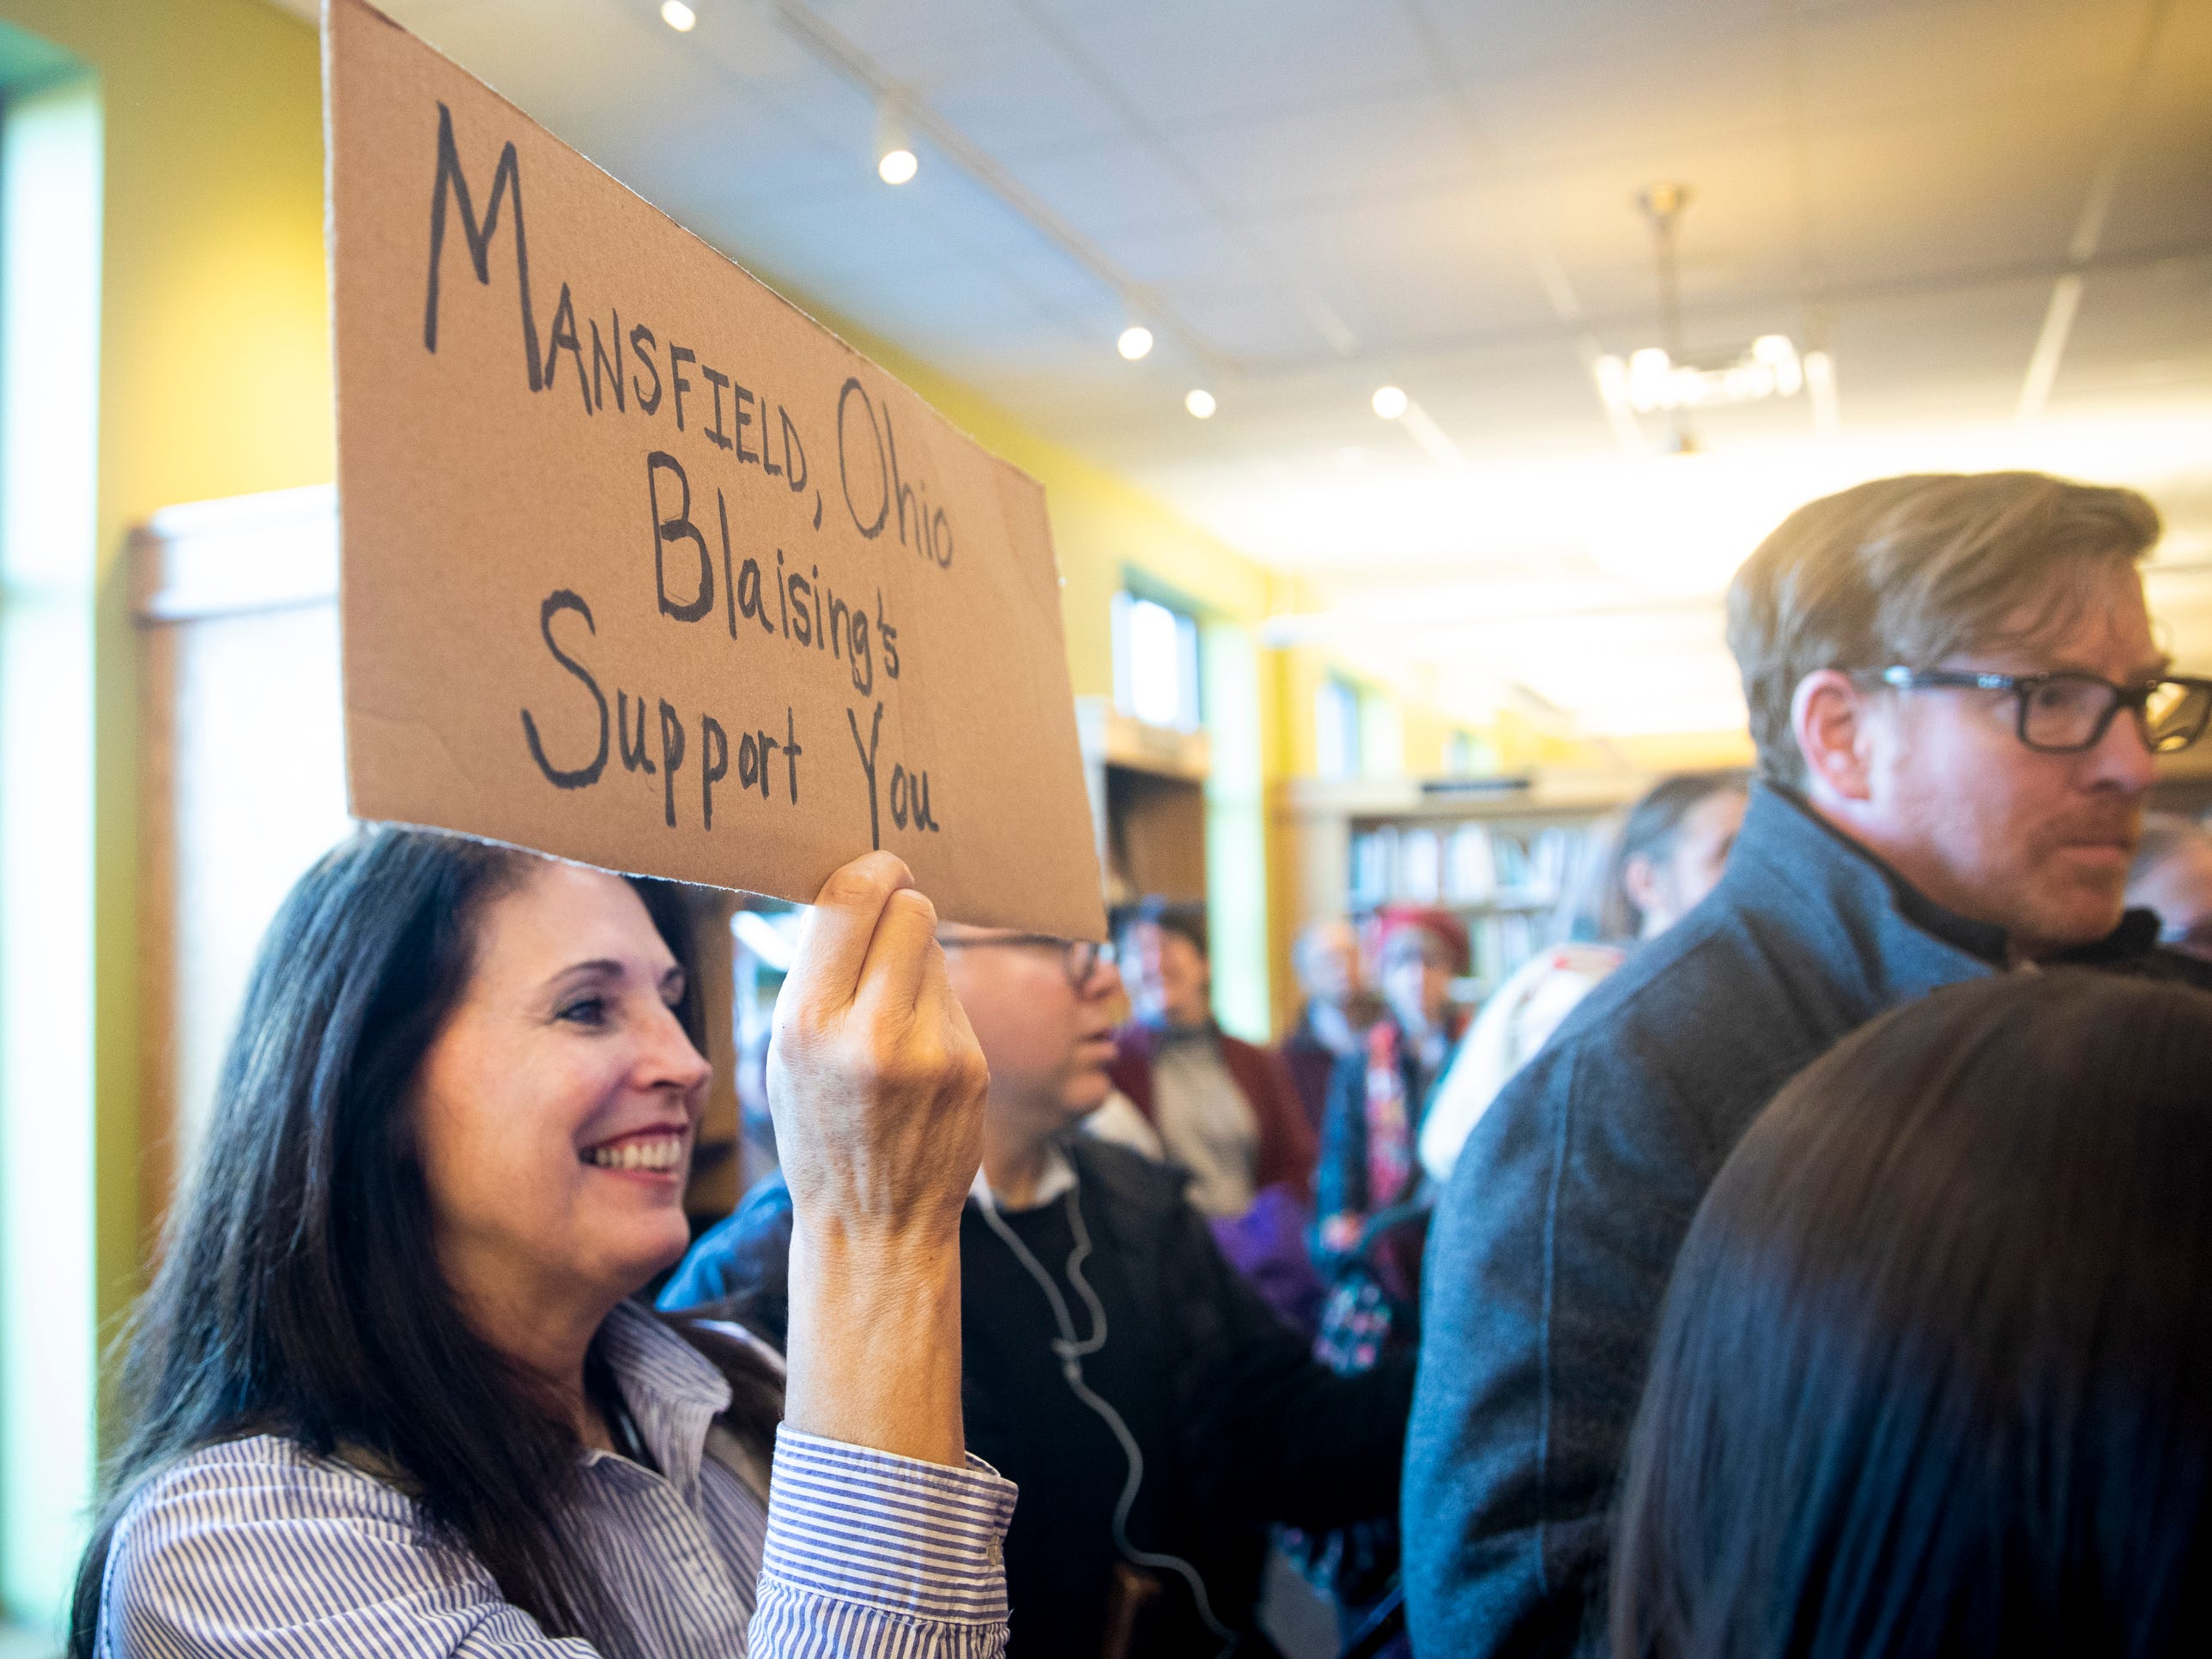 Timberly Blaising holds a homemade sign for Senator Sherrod Brown during a meet and greet at Gibson's Bookstore in Concord, N.H. Saturday, February 9, 2019. Blaising drove from Massachusetts to see Brown, a family friend from Mansfield, OH. Her sister went to high school with Brown and their mothers were friends.